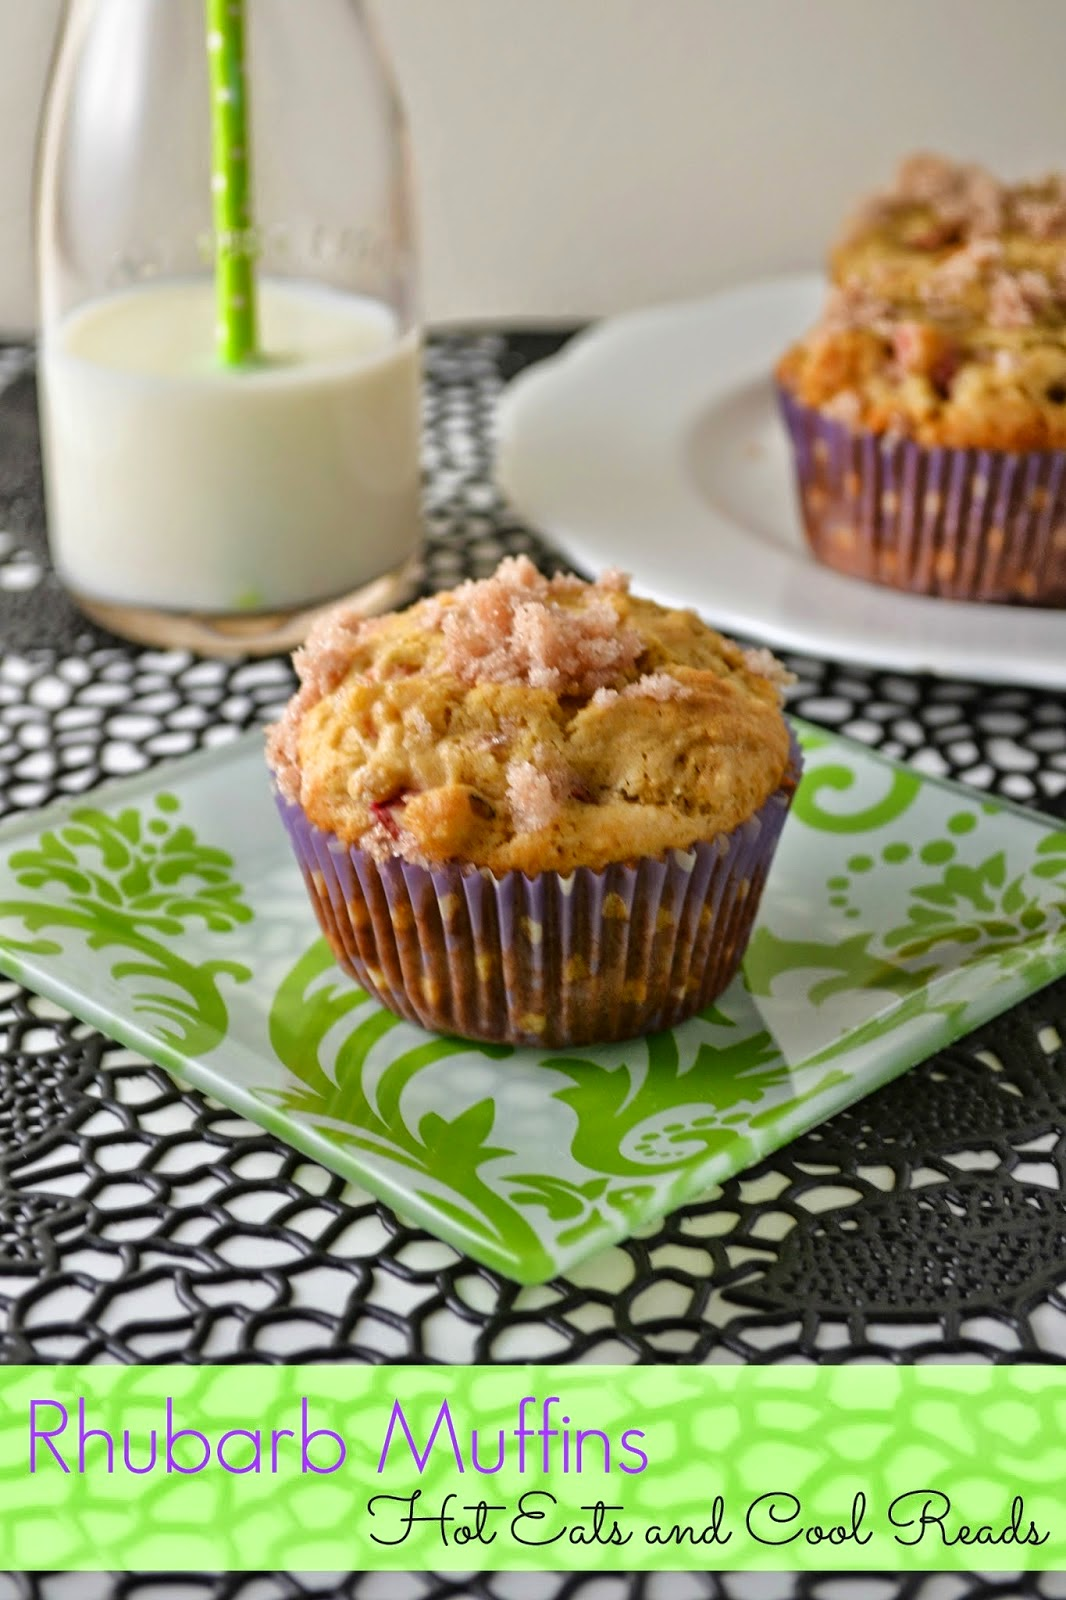 Cinnamon and Sugar Topped Rhubarb Muffins by Hot Eats and Cool Reads: